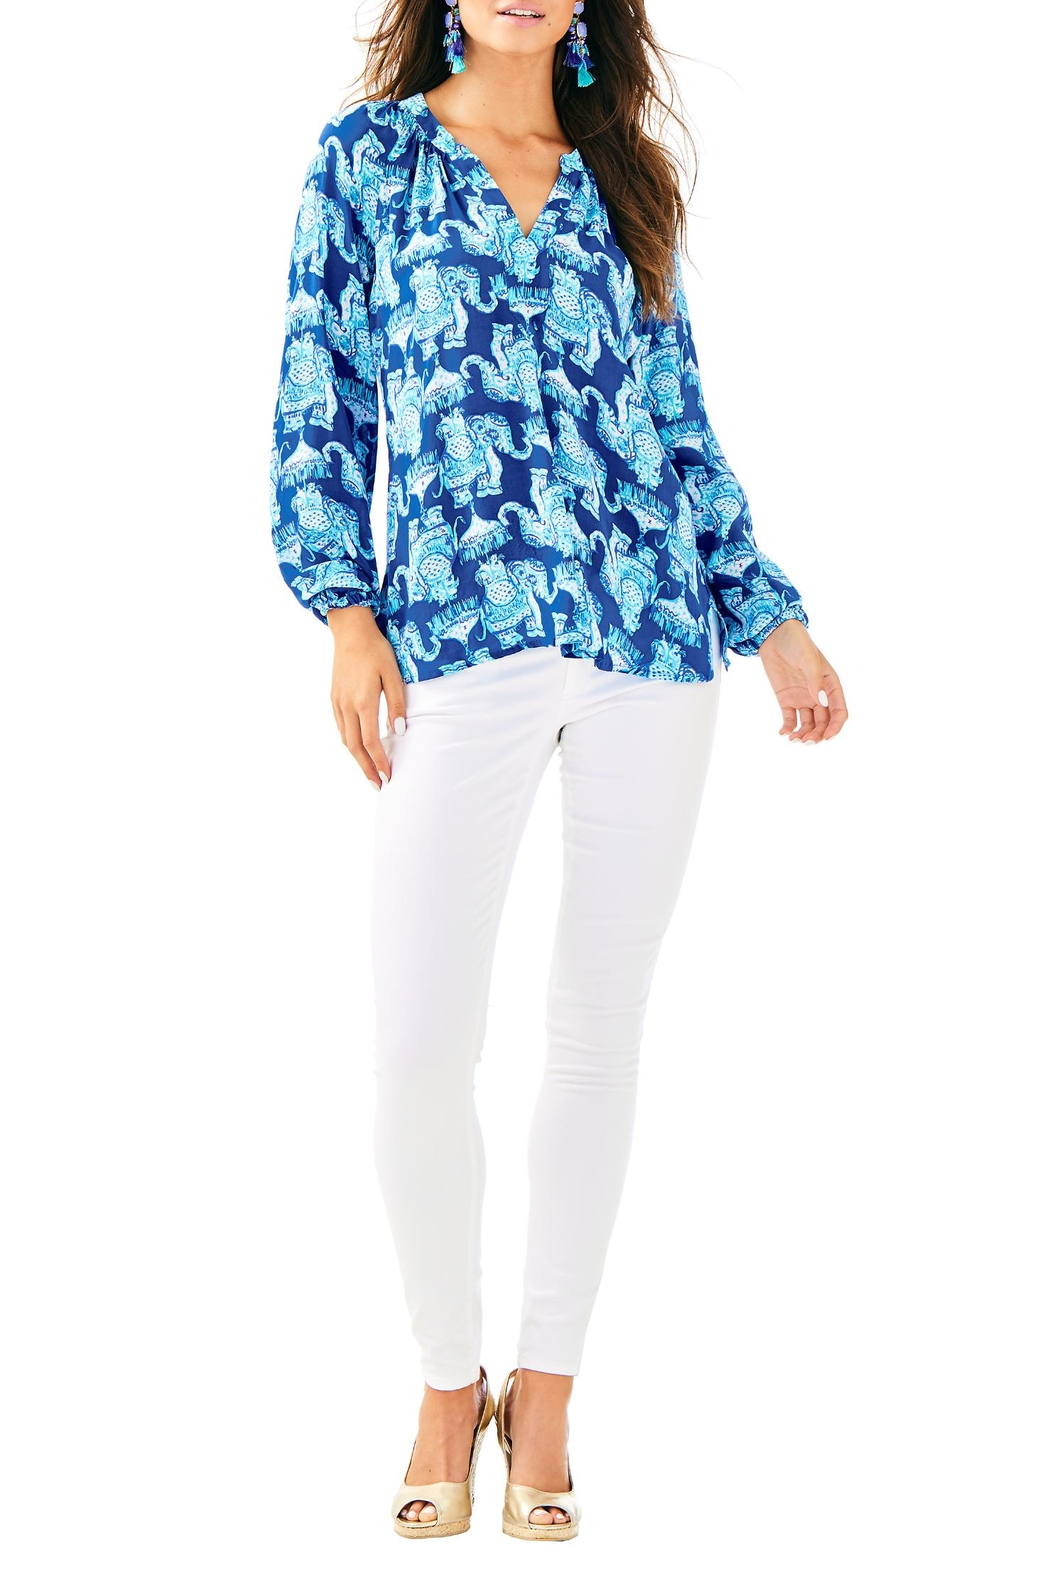 Lilly Pulitzer Martinique Top - Main Image